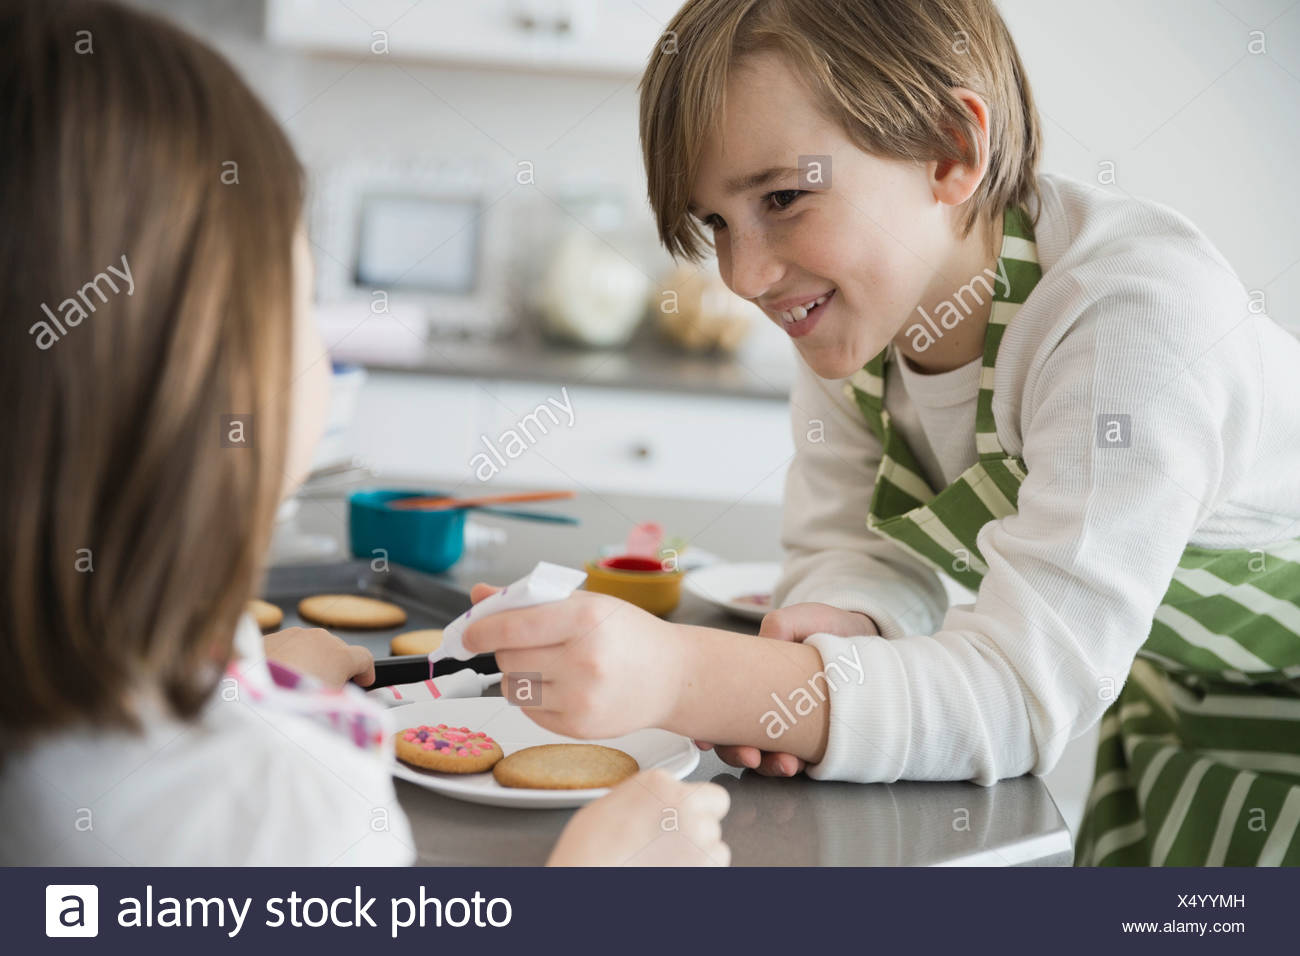 Siblings decorating cookies in kitchen - Stock Image